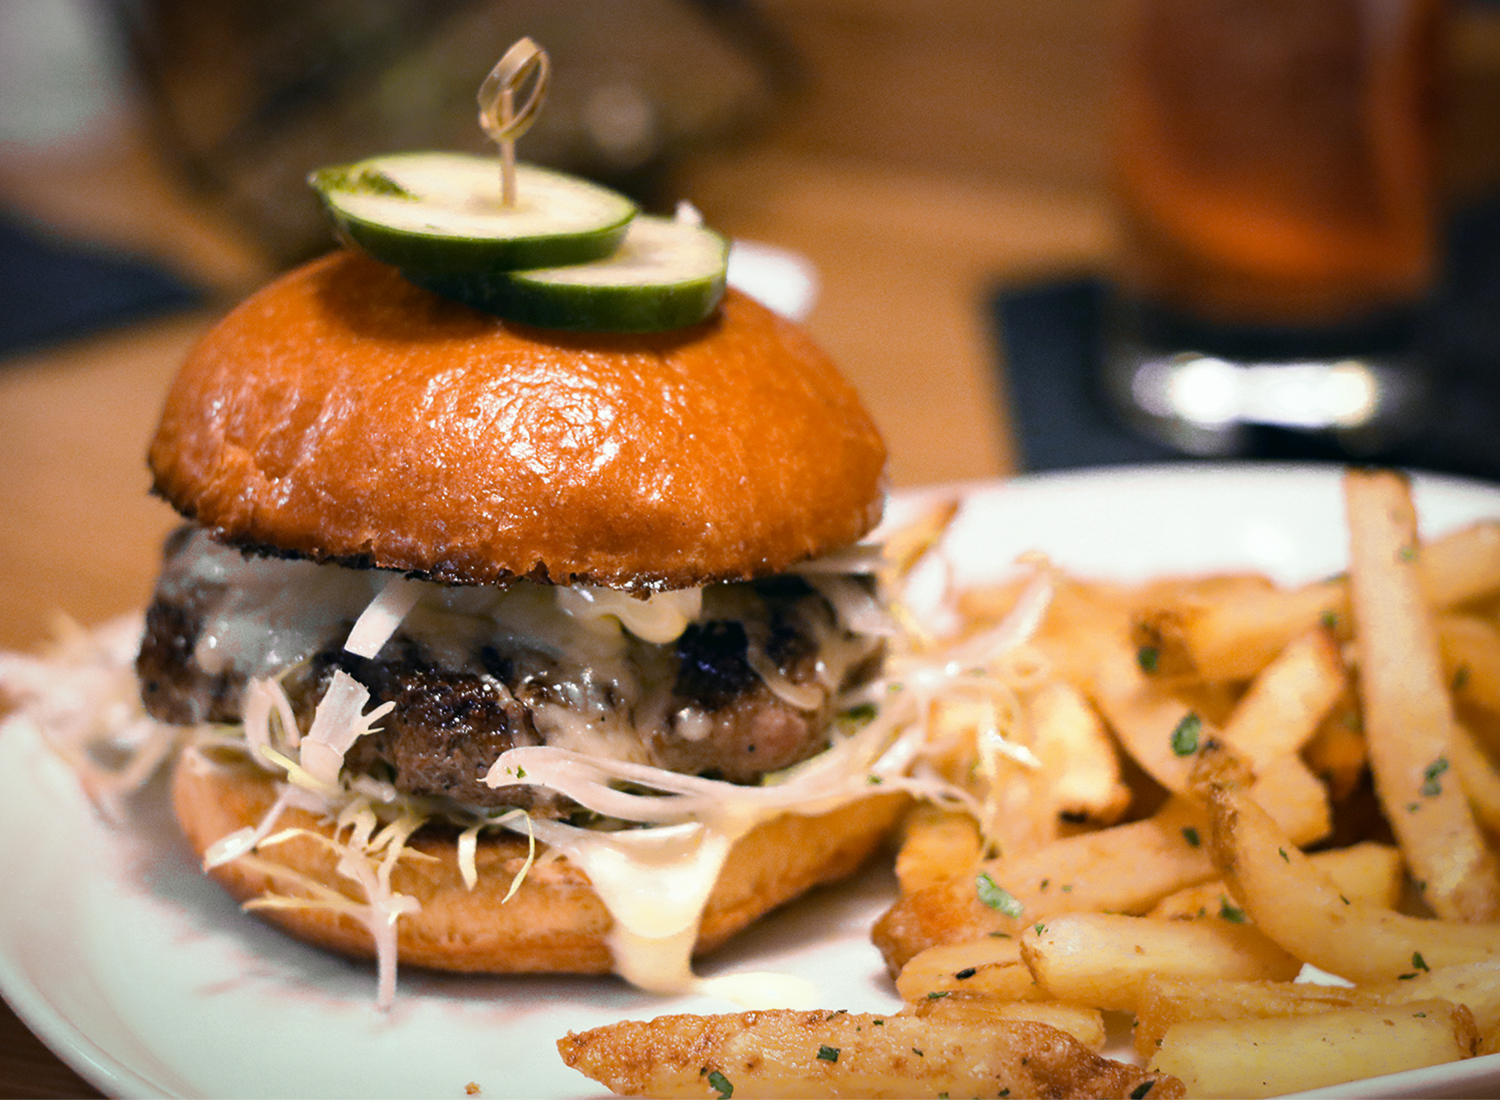 House burger with aged cheddar, lettuce, at Perch and Plow restaurant in Santa Rosa. Heather Irwin/PD